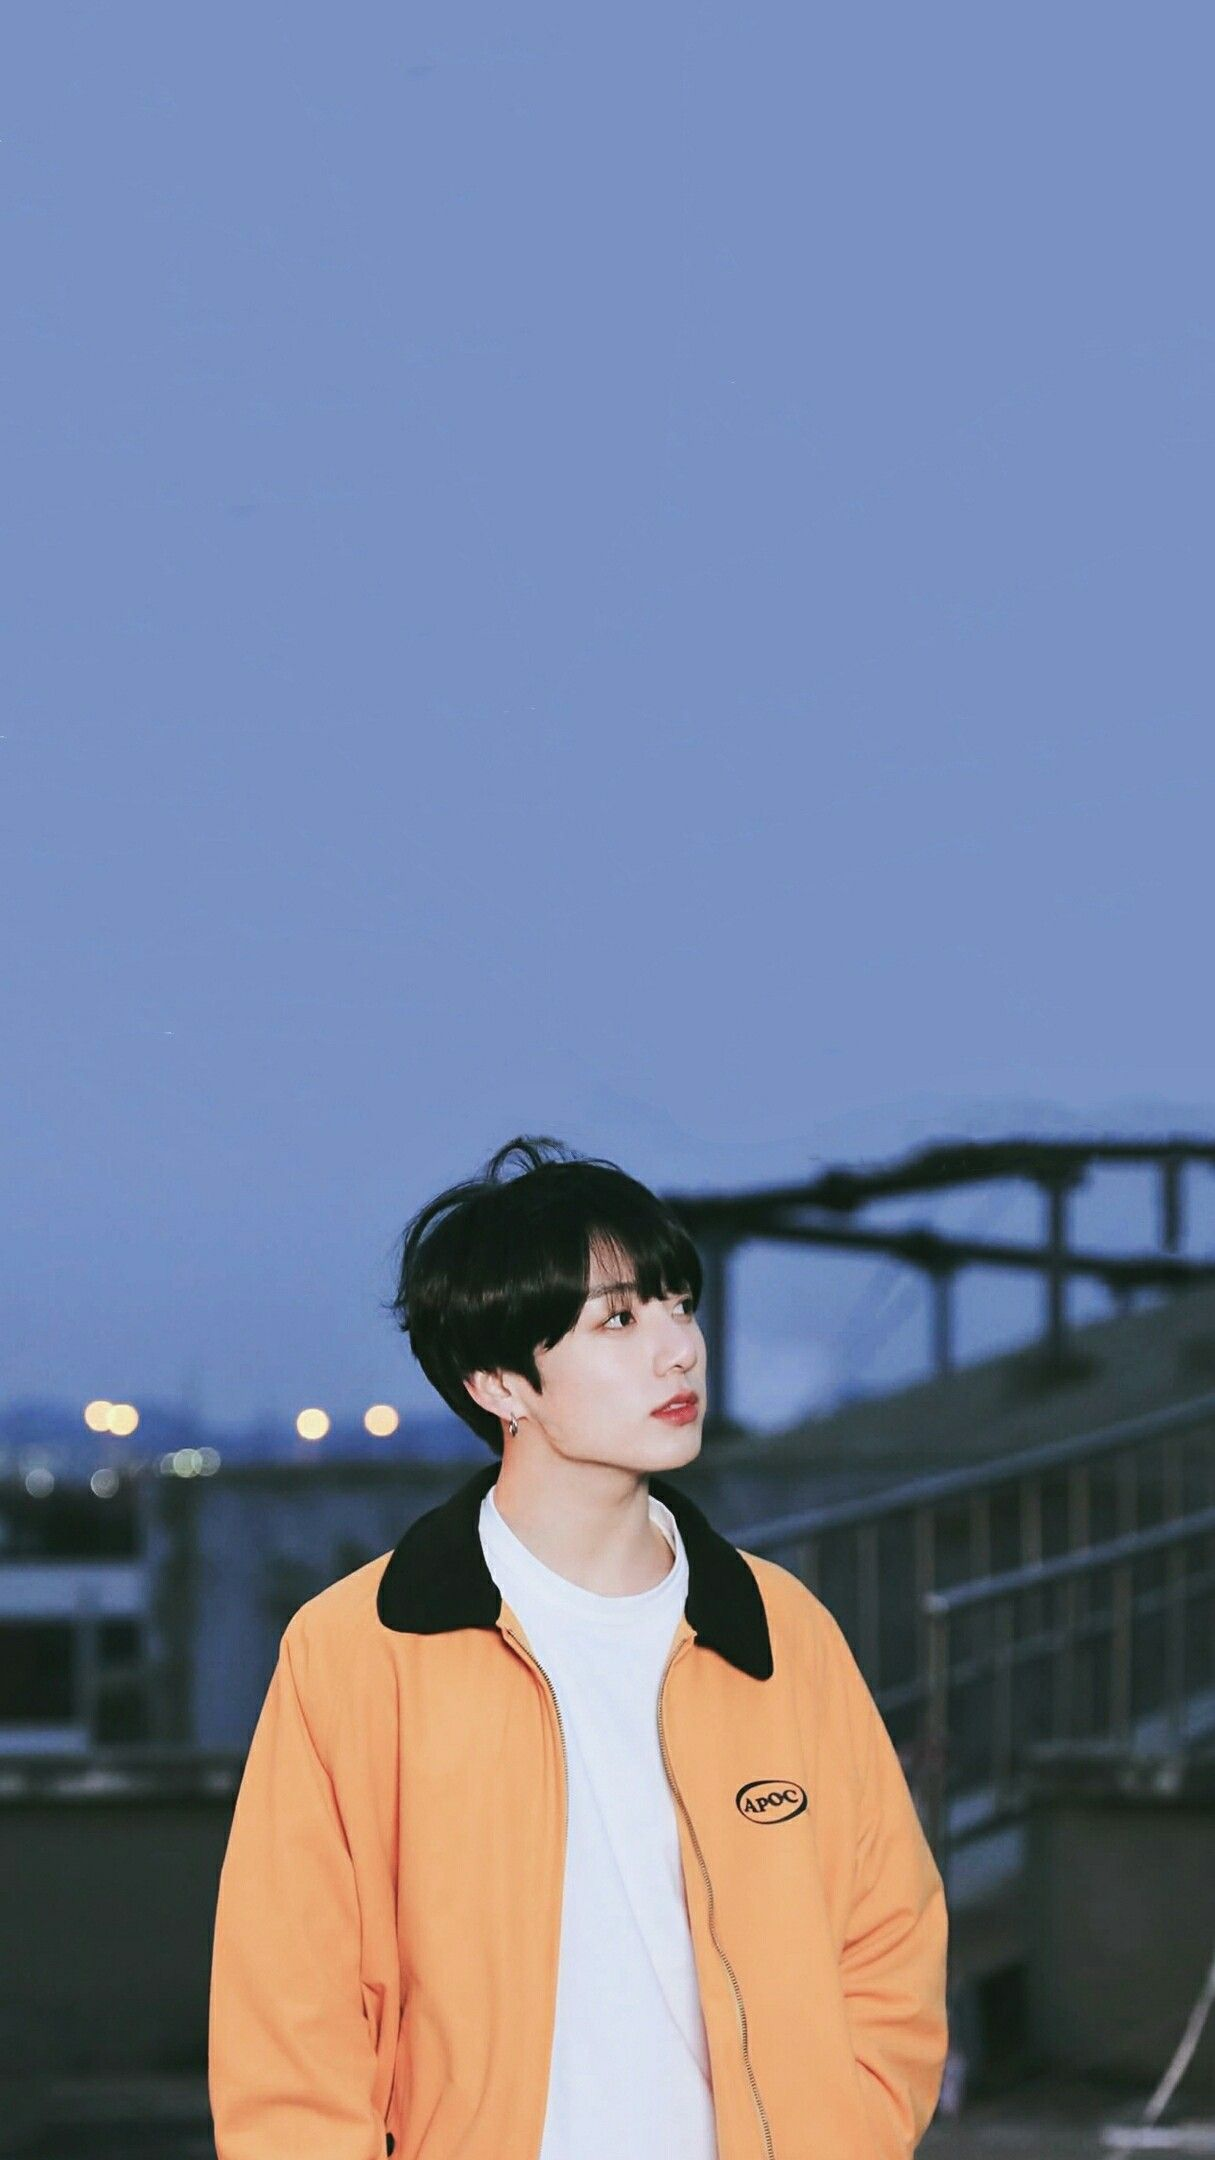 Bts Edits Bts Wallpapers Pls Make Sure To Follow Me Before U Save It Find More On My Account Pls Don T Repost Bts Jungkoo Cantores Imagens Bts Bts